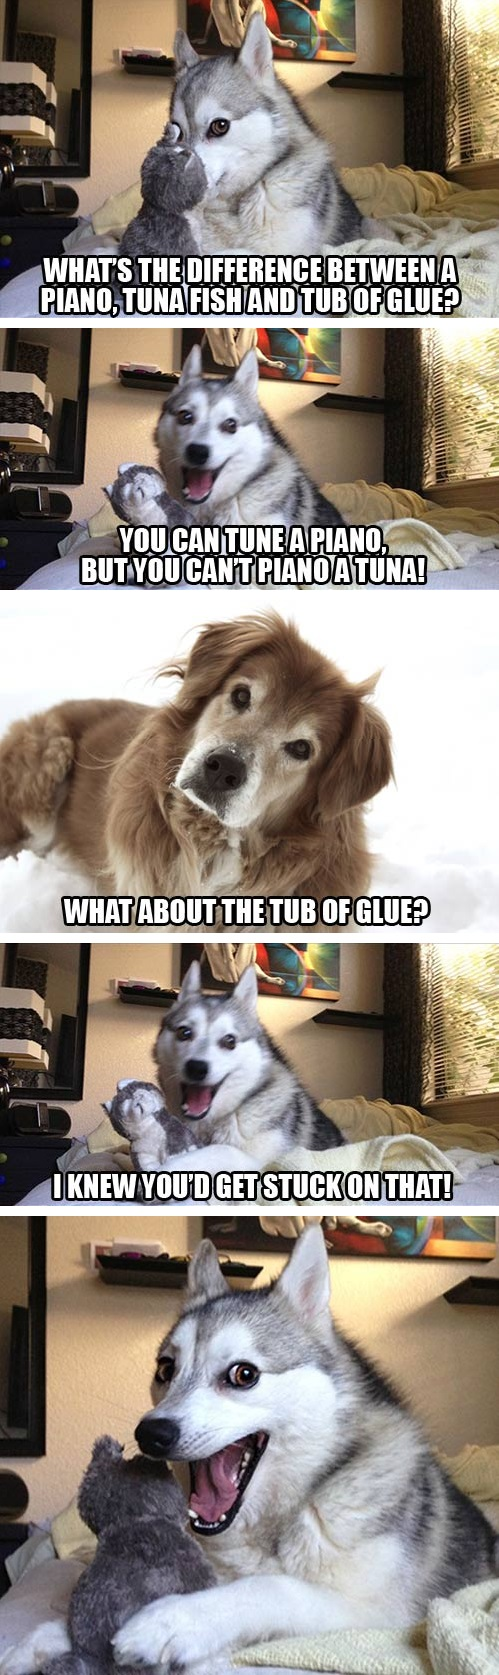 Medium Of Joke Dog Meme